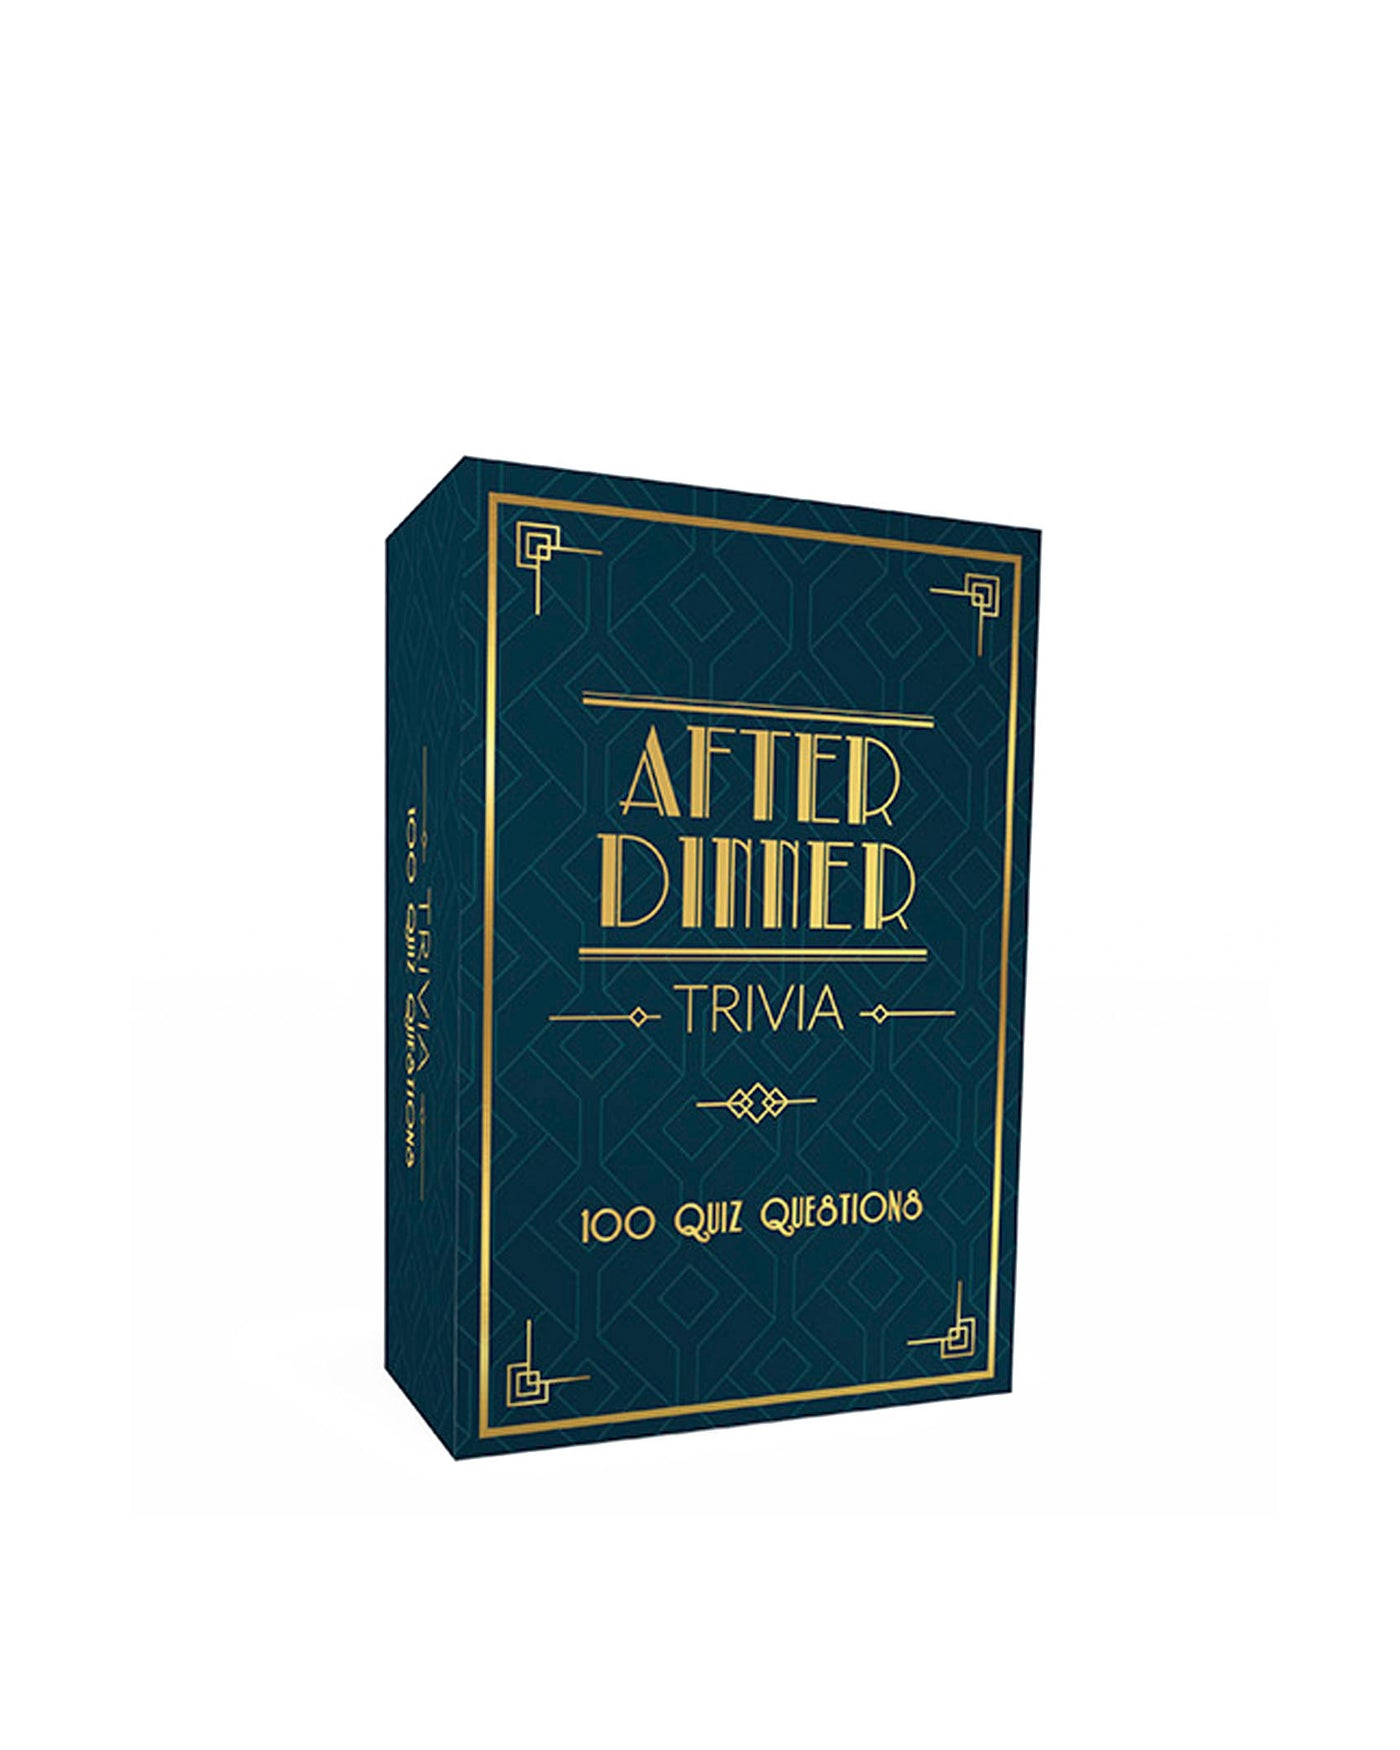 After Dinner Trivia Cards - General Knowledge